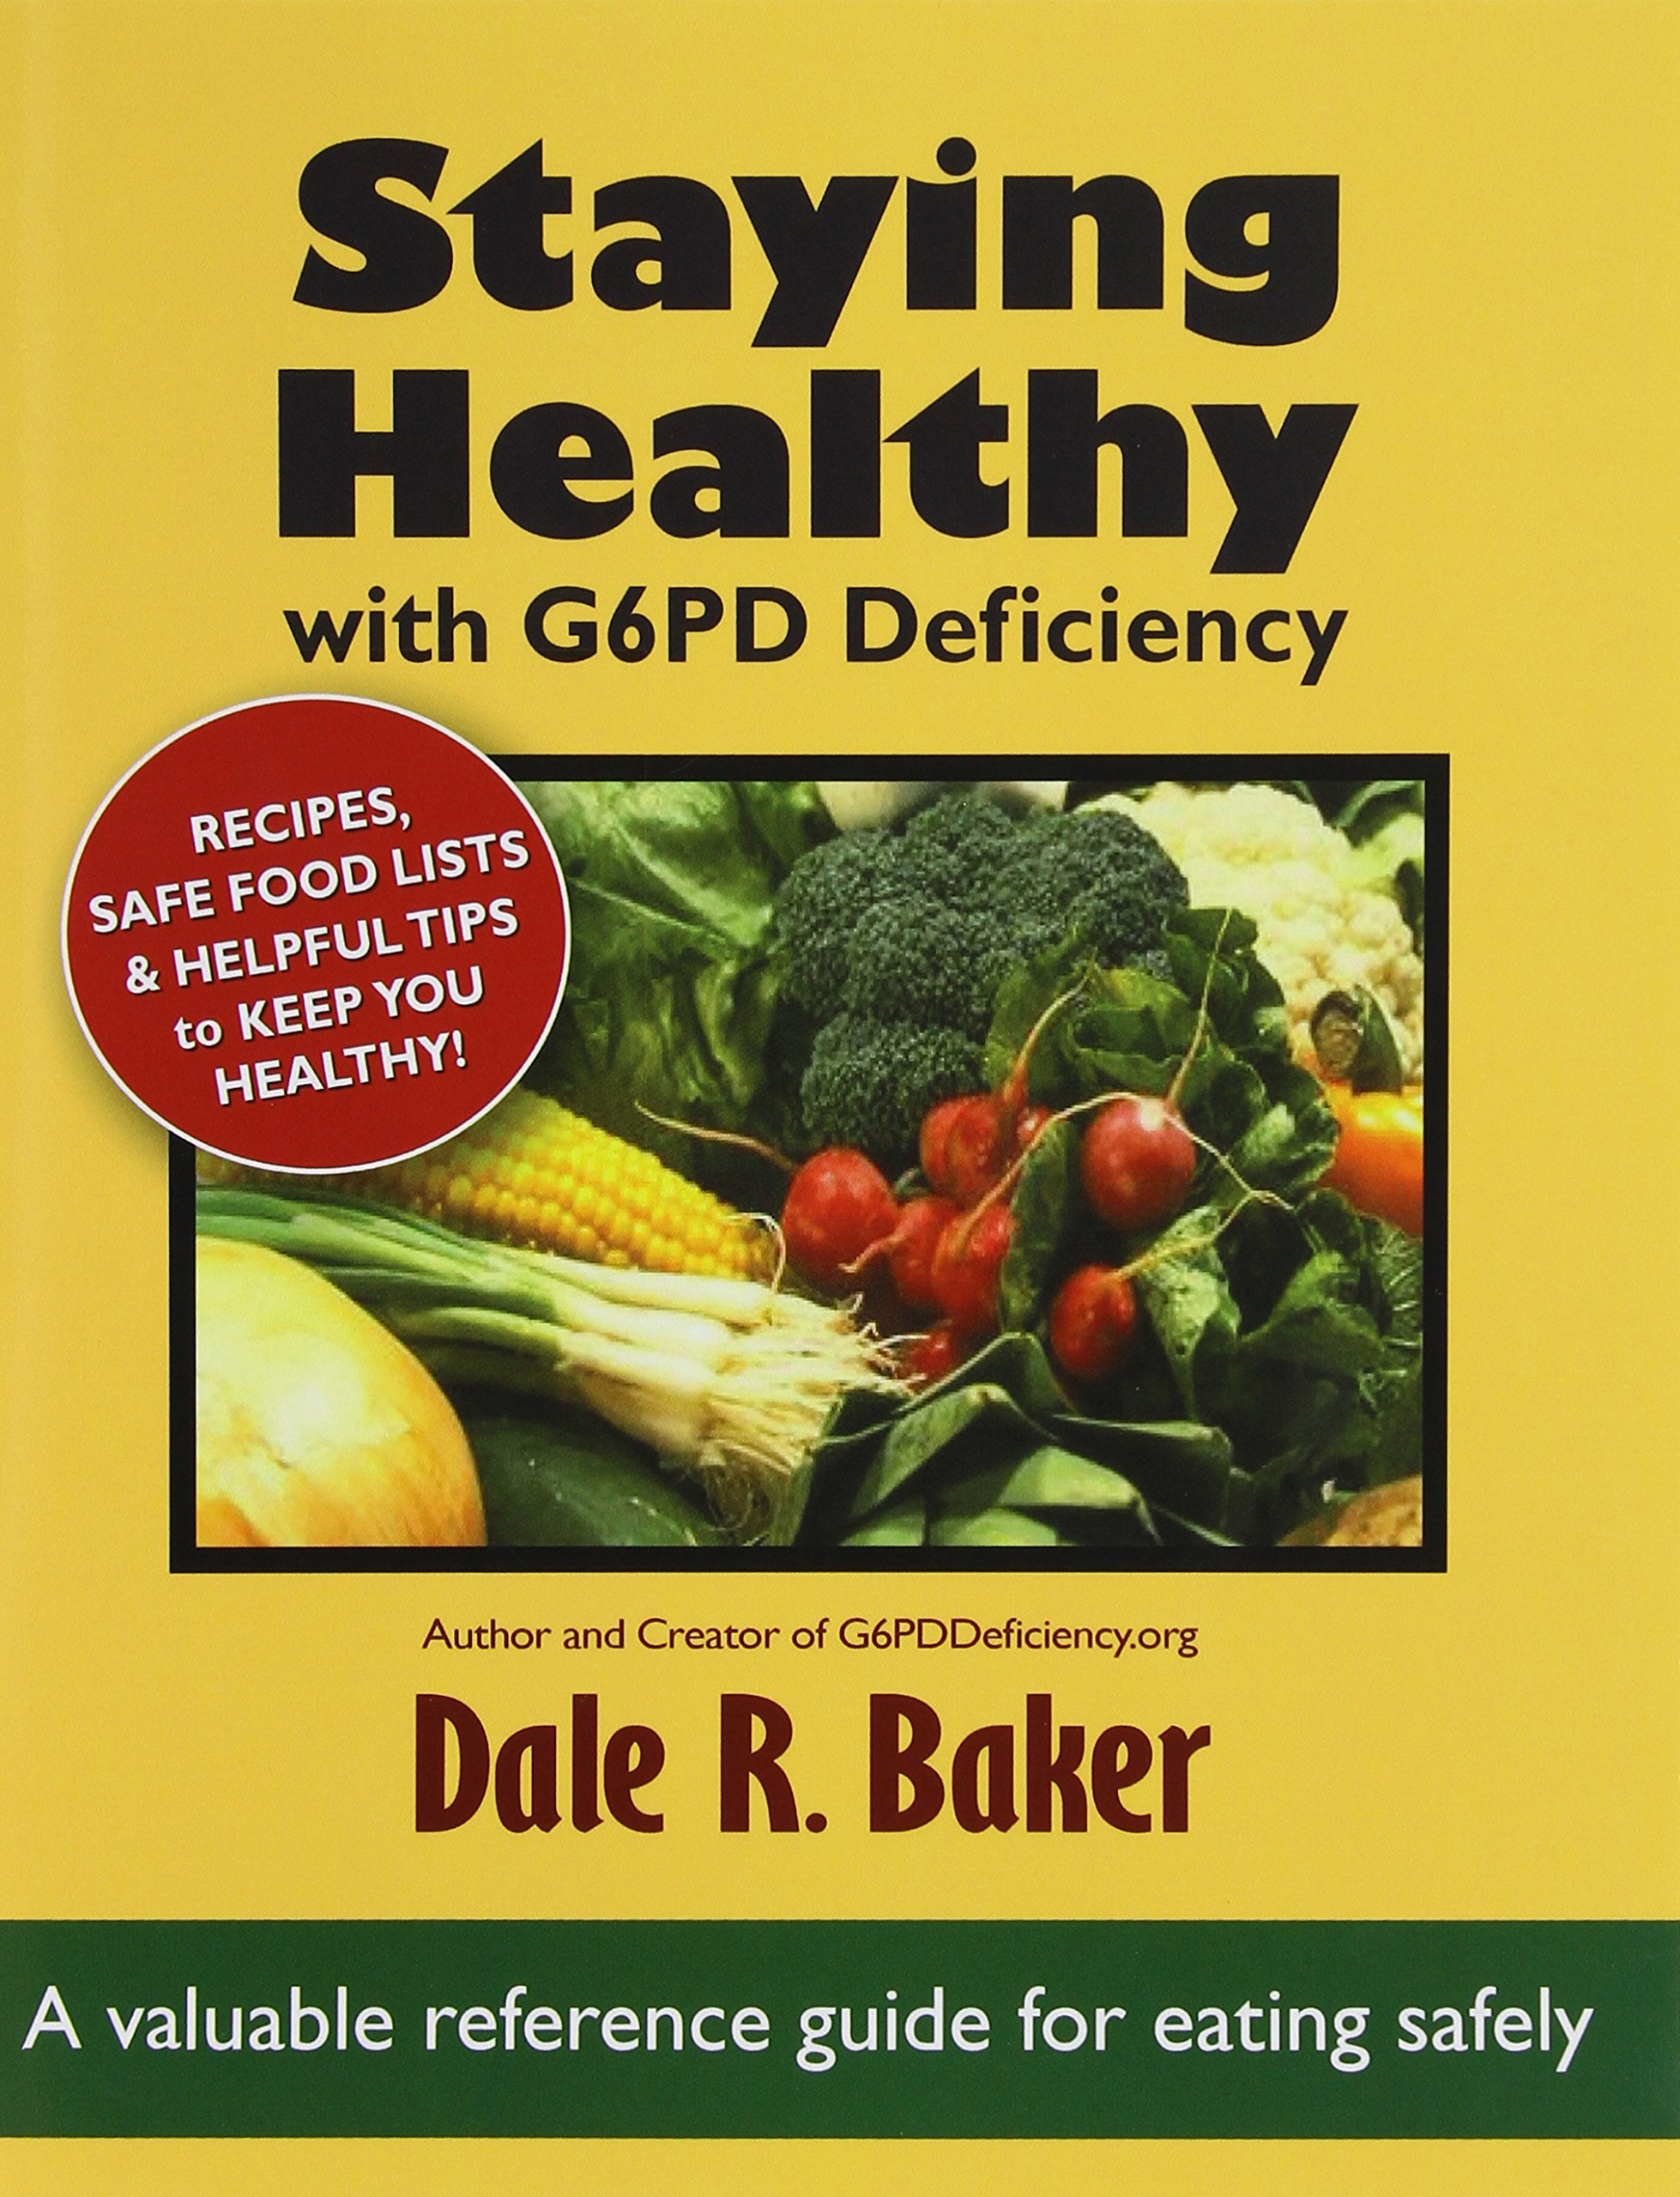 Staying Healthy with G6PD Deficiency: A valuable reference guide for eating safely Paperback – February 12, 2011 Dale R. Baker Melody Baker Mr. 098617680X